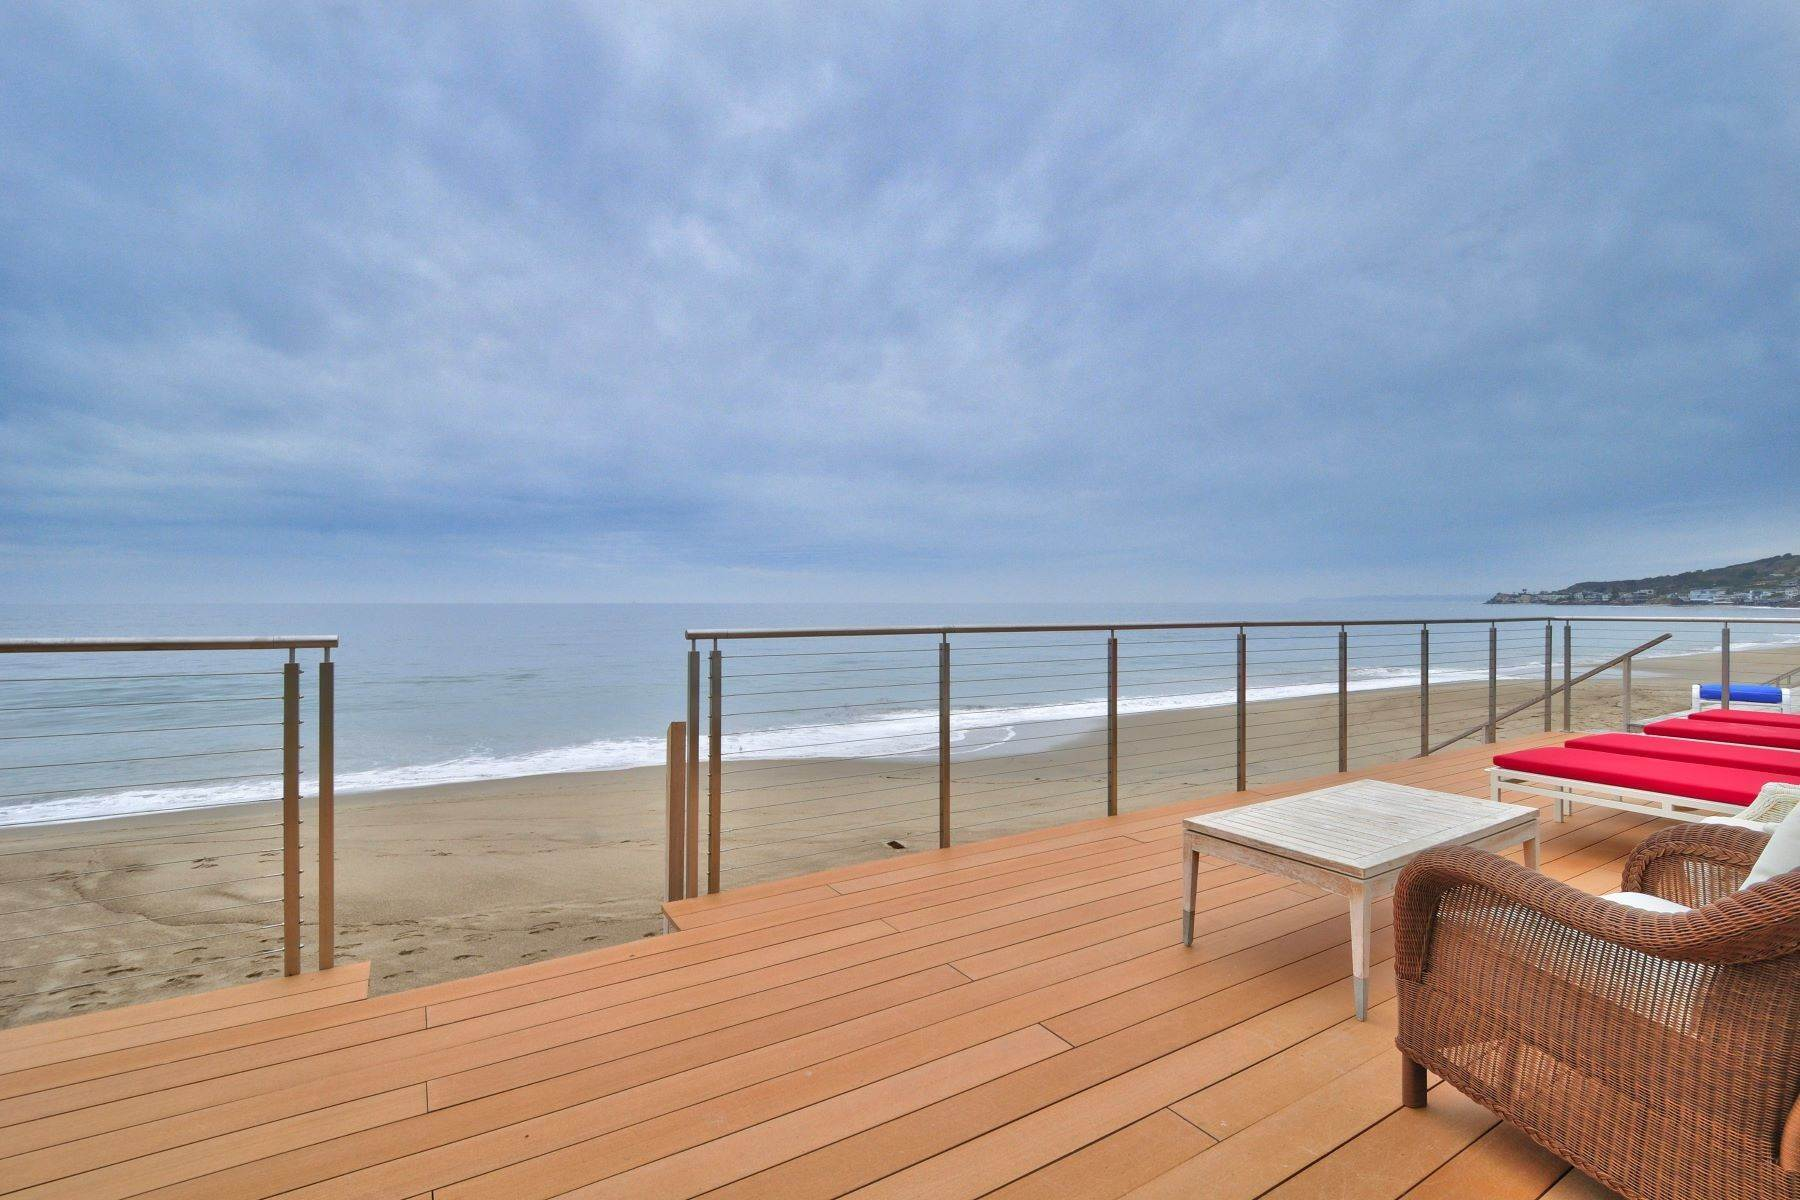 Guard Gated Malibu Colony Beach Estate 23536 Malibu Colony Road Malibu, 캘리포니아 90265 미국에 Single Family Homes